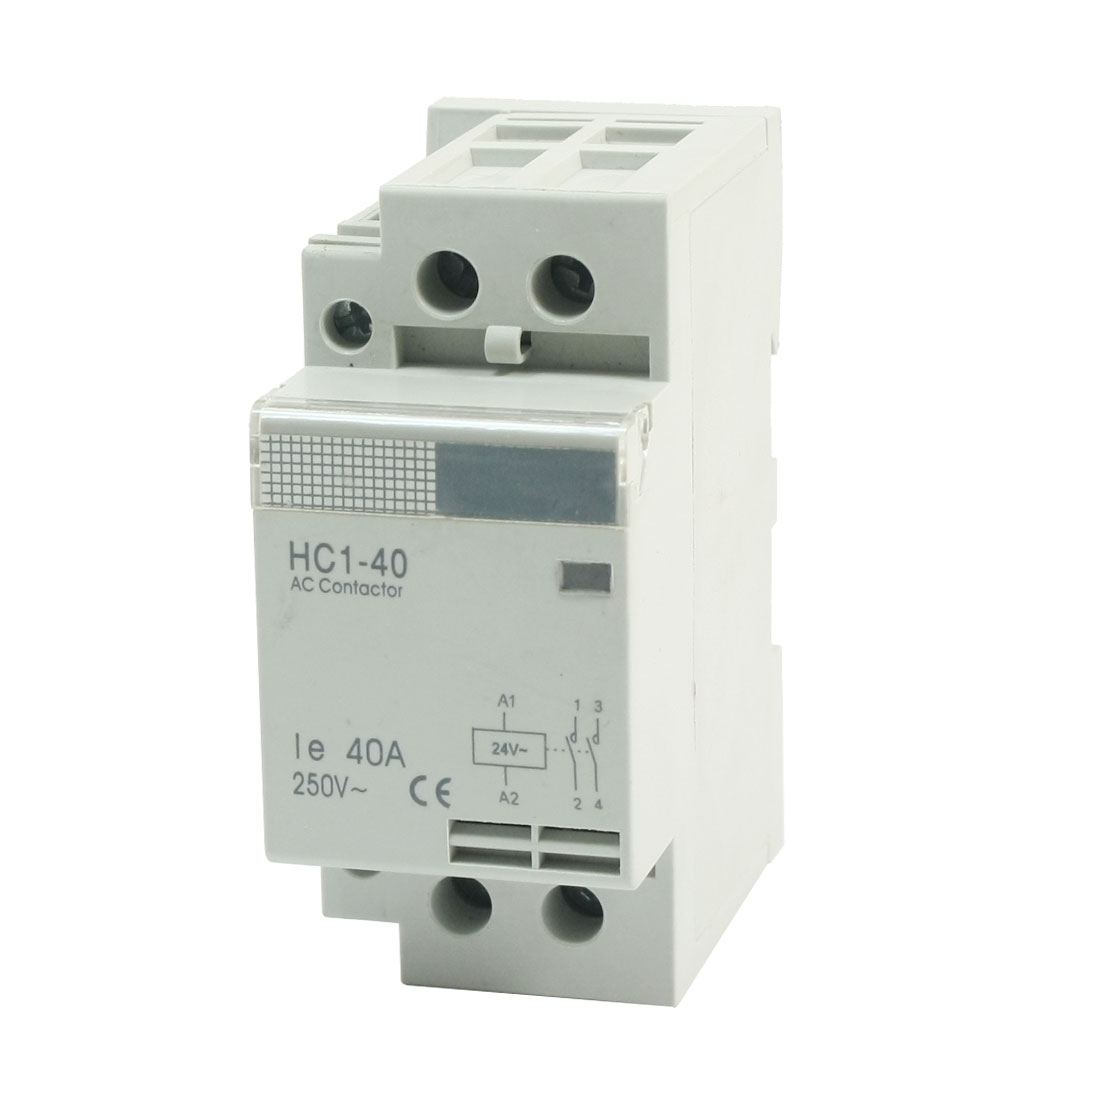 HC1-40 2Pole 35mm DIN Rail Mount Electric AC Contactor 24V Coil 40A